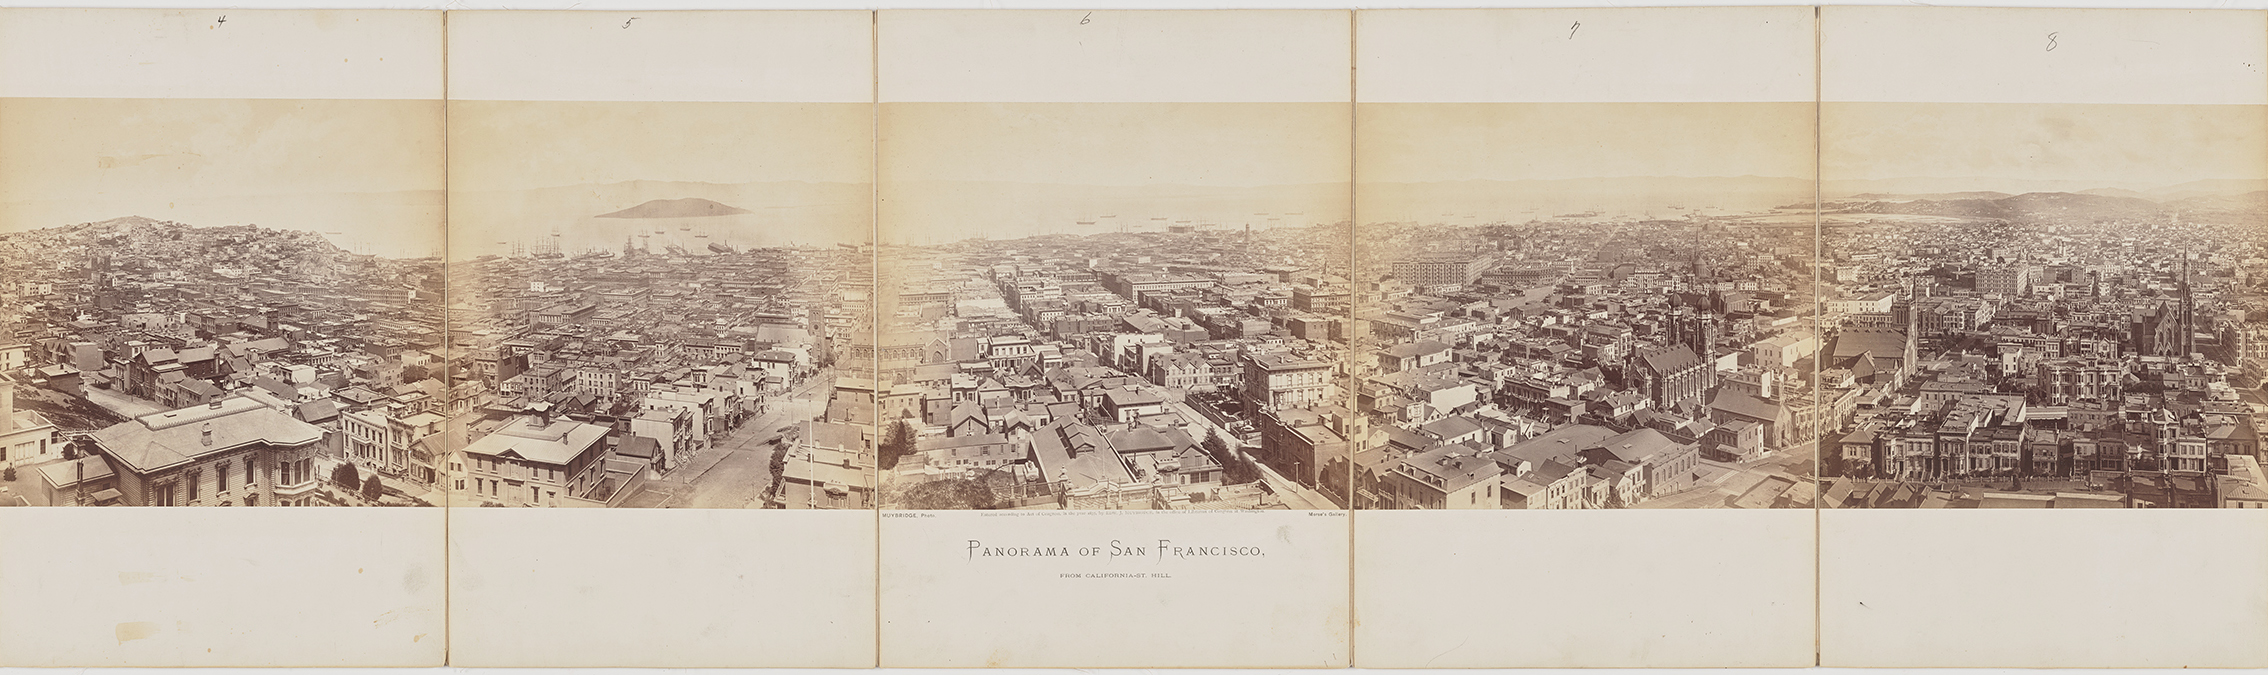 "Panels four through eight of Eadweard Muybridge's ""Panorama of San Francisco from California Street Hill"" taken in 1877. Courtesy the California Historical Society. (Click to enlarge)"